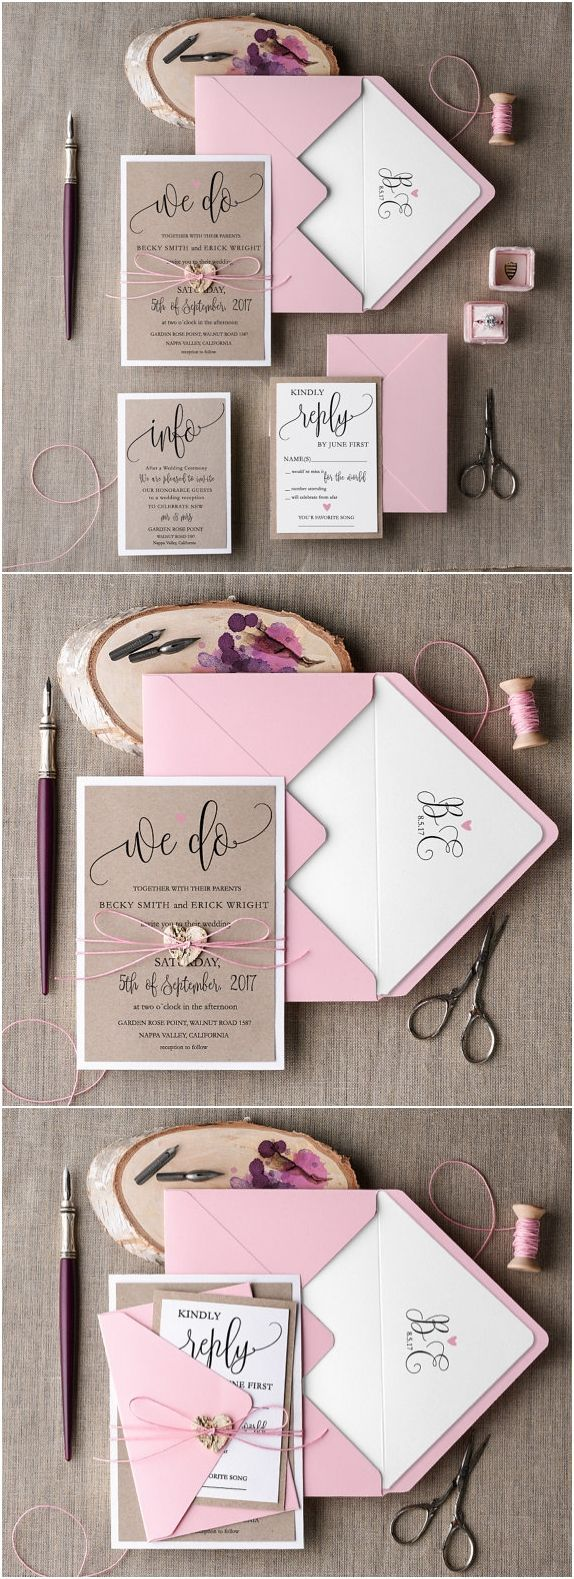 Wedding Invitation Suite Pink Invitation Elegant Wedding